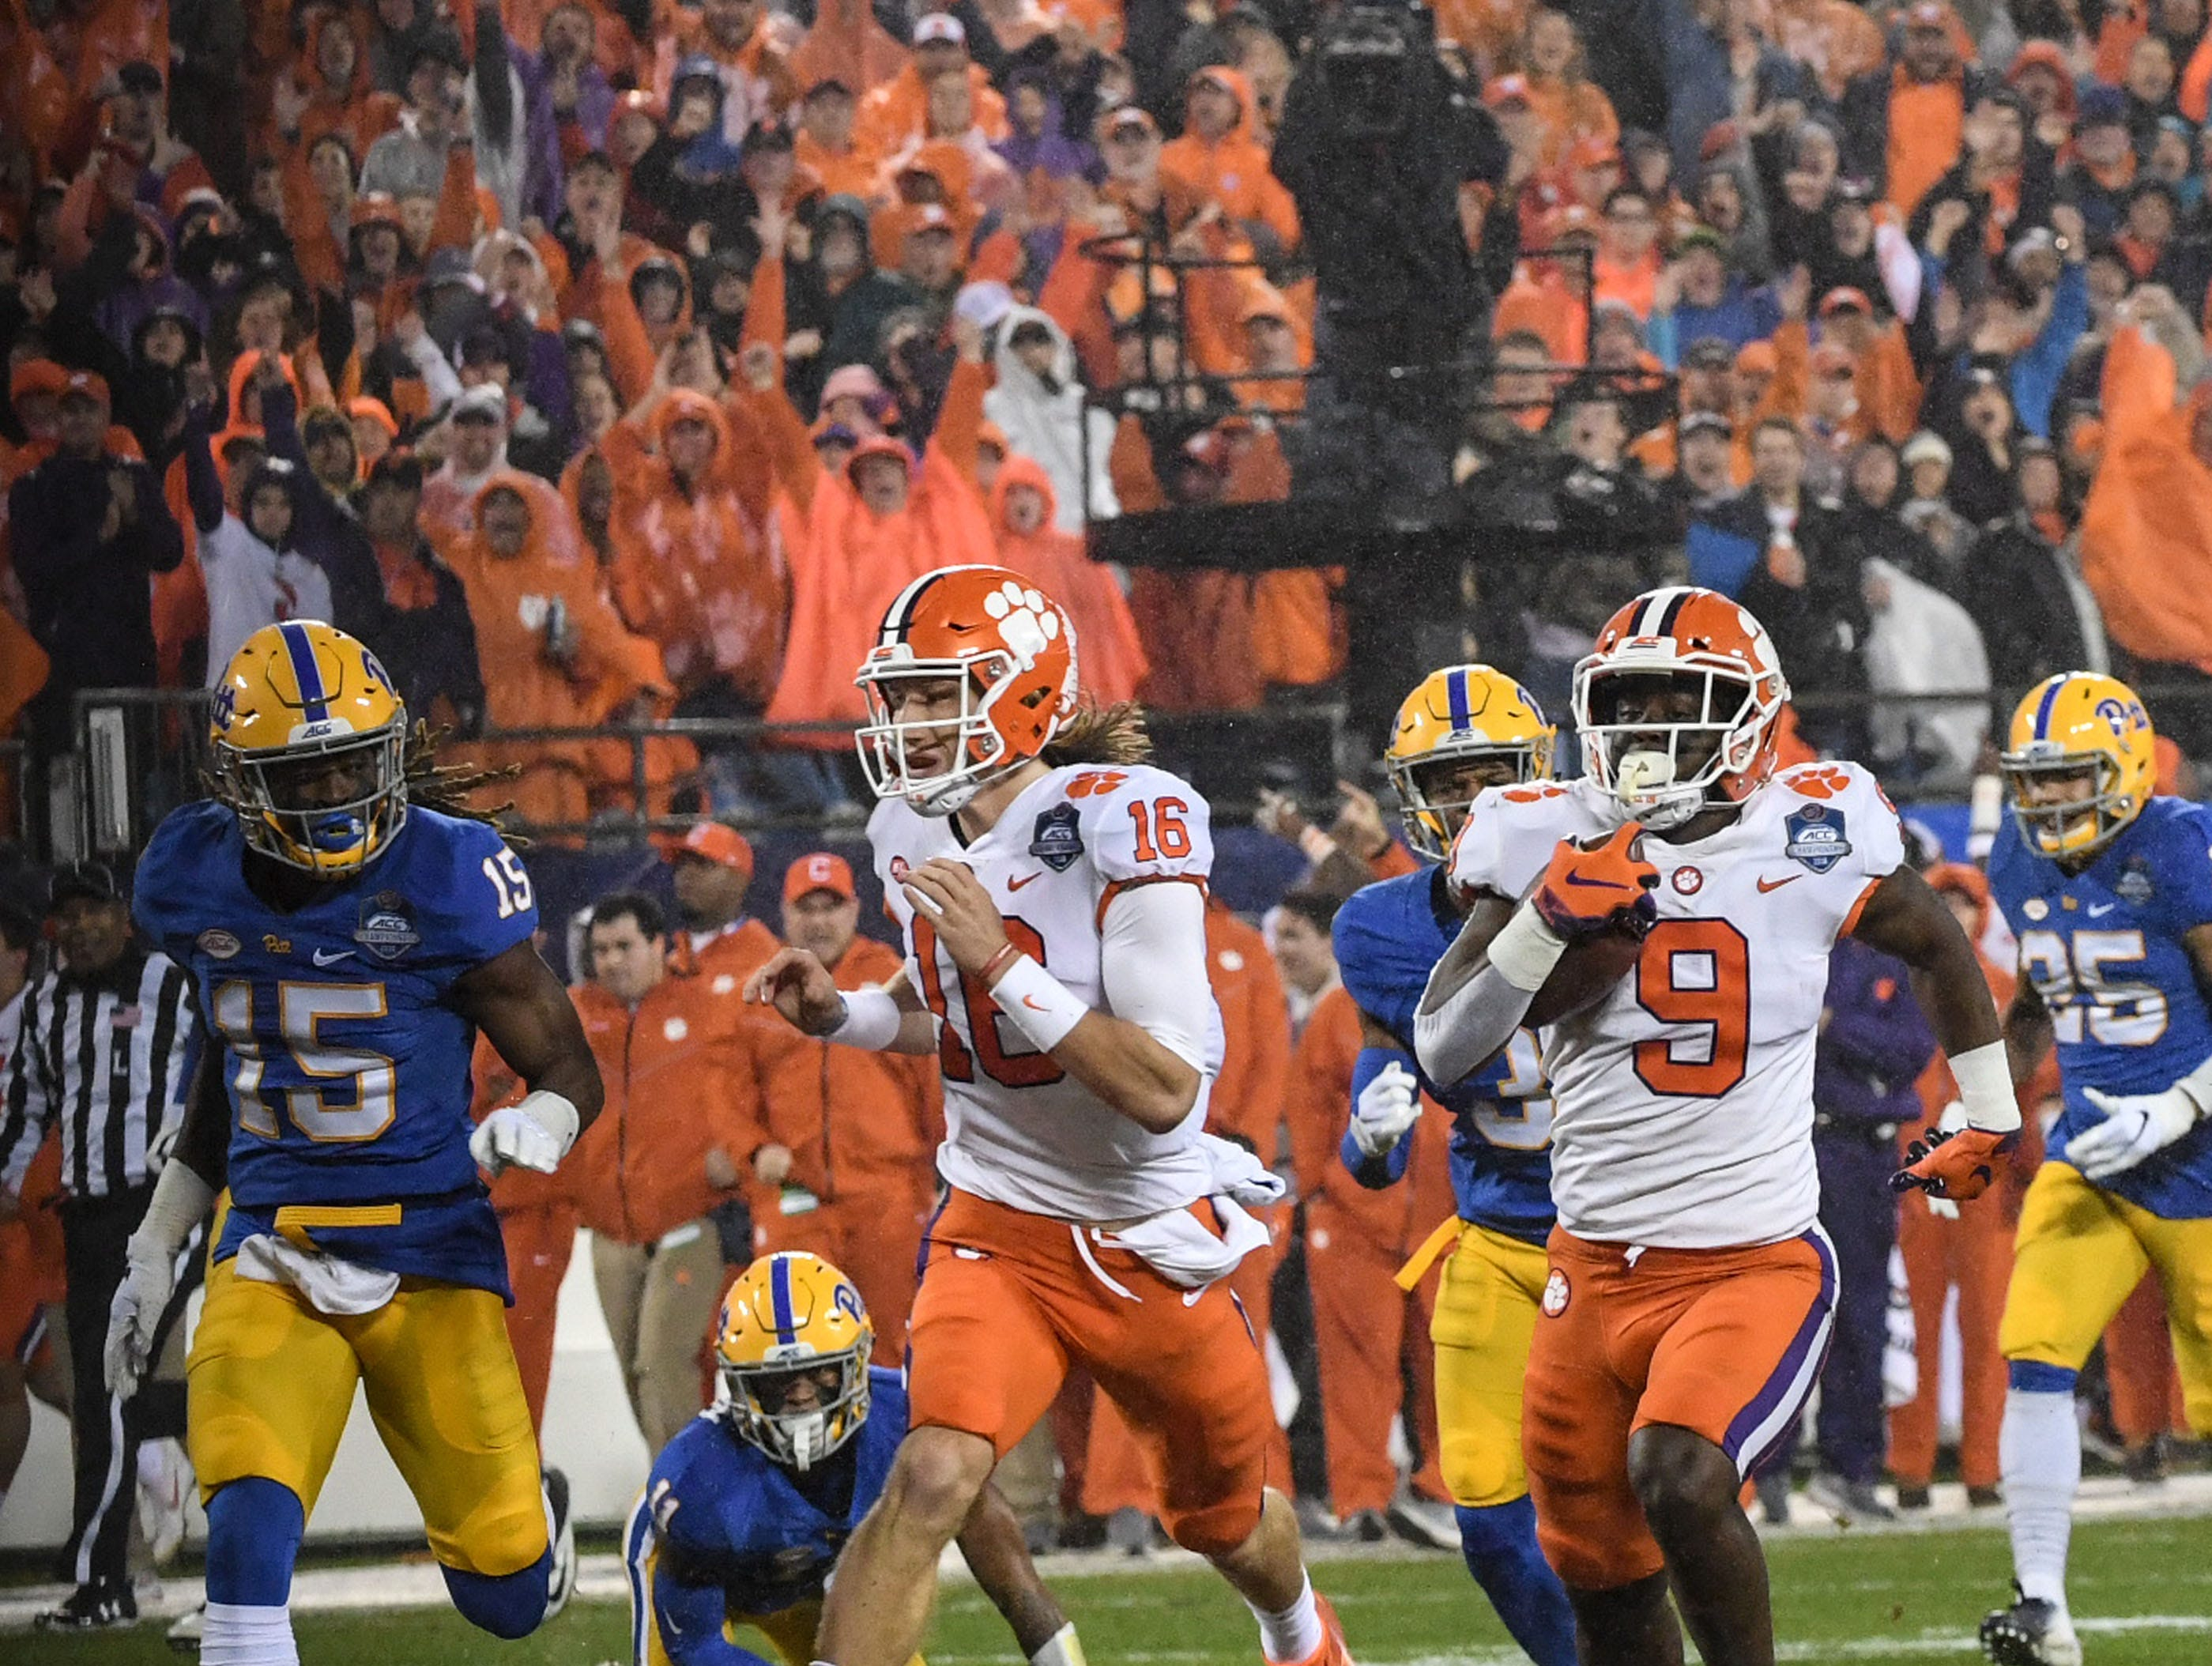 Clemson running back Travis Etienne (9) runs for a 75-yard touchdown against Pittsburgh during the first quarter of the Dr. Pepper ACC football championship at Bank of America Stadium in Charlotte, N.C. on Saturday, December 1, 2018.